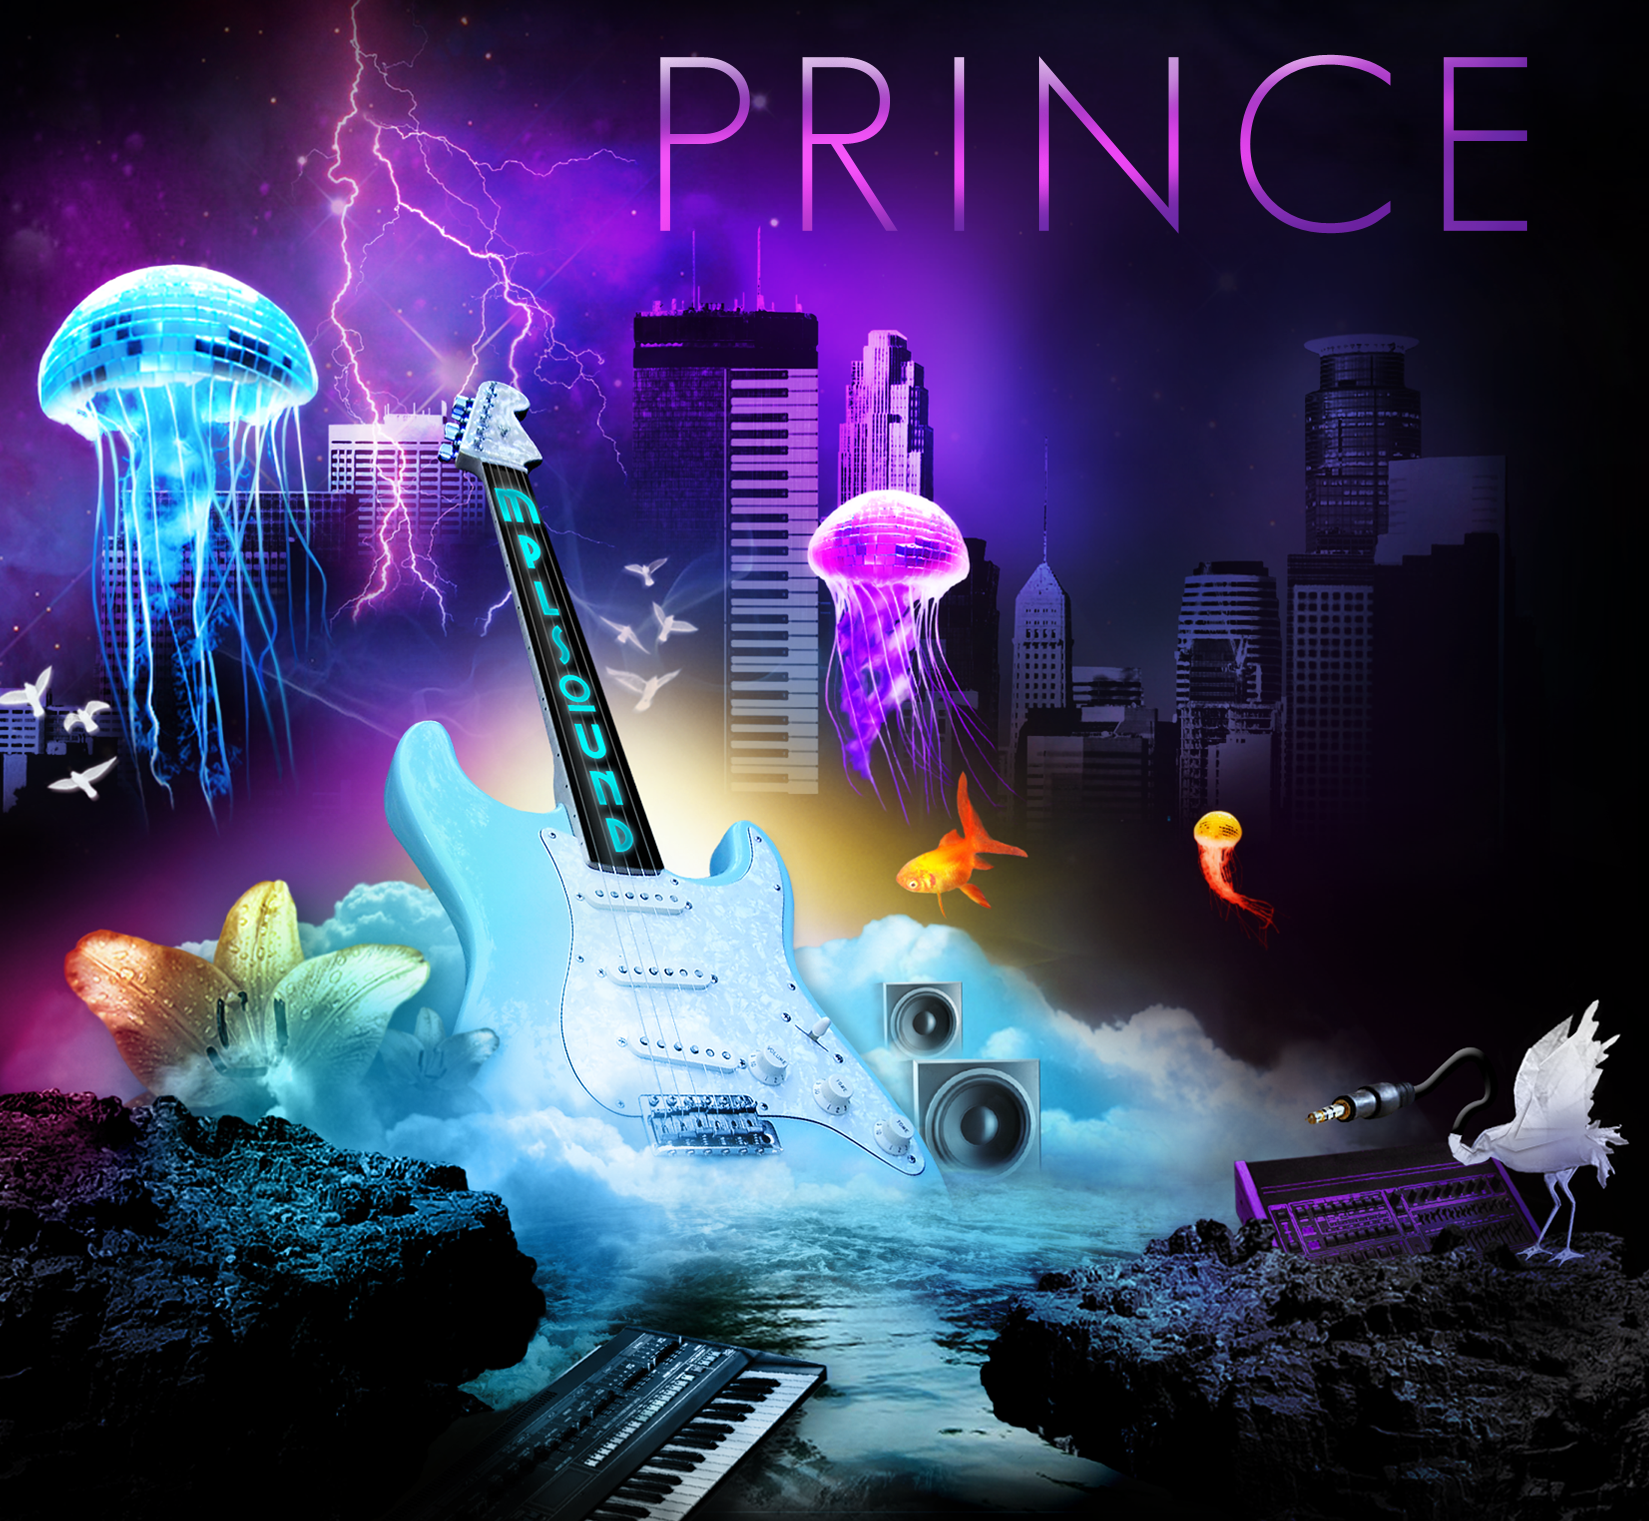 Review Mplsound By Prince